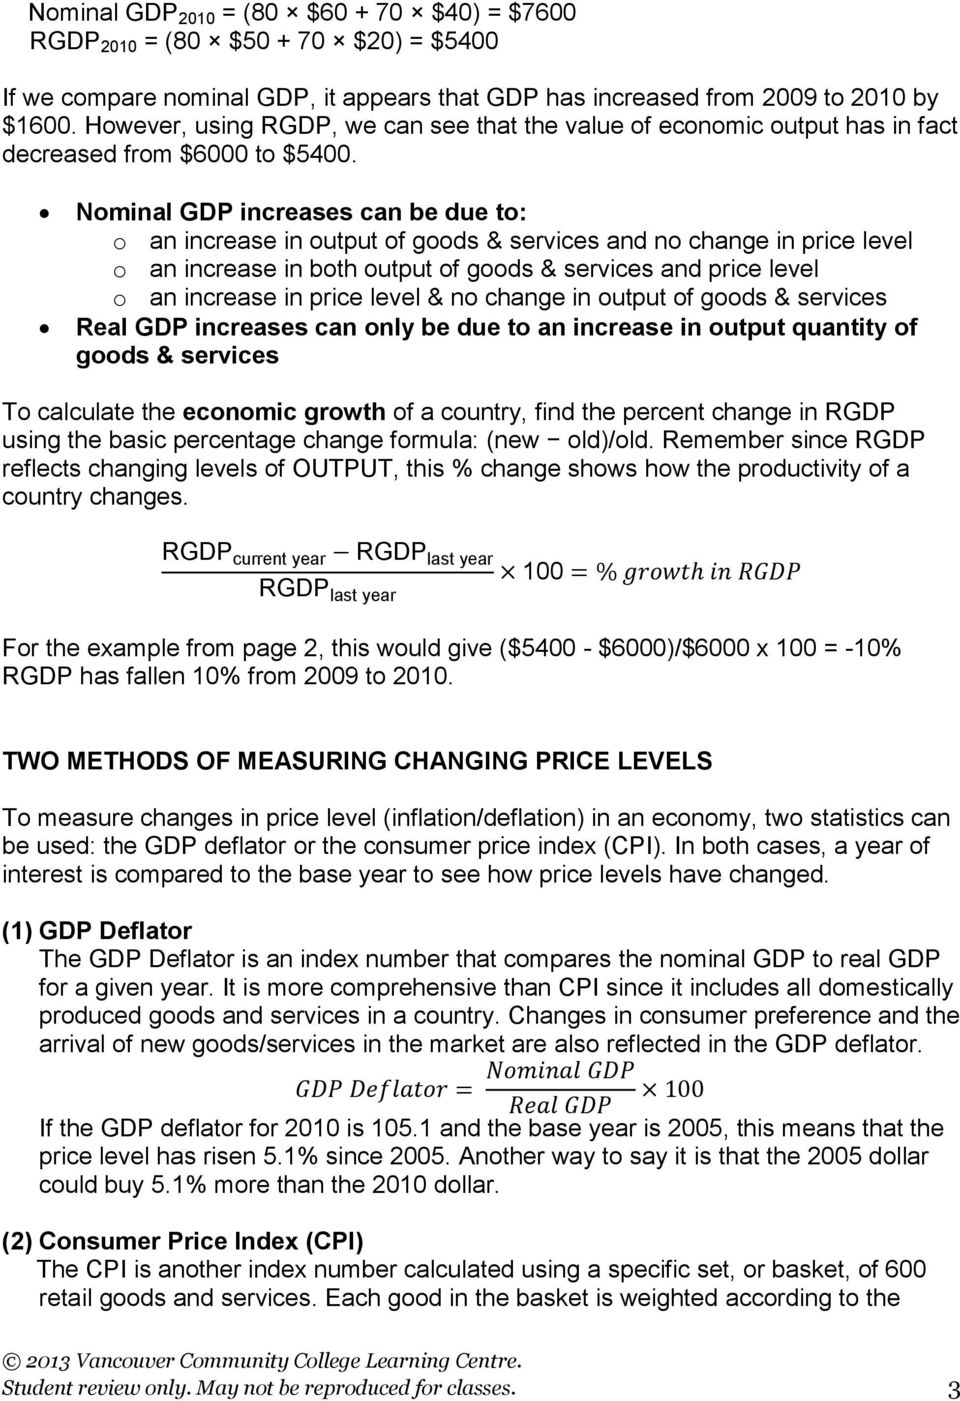 Nominal GDP increases can be due to: o an increase in output of goods & services and no change in price level o an increase in both output of goods & services and price level o an increase in price